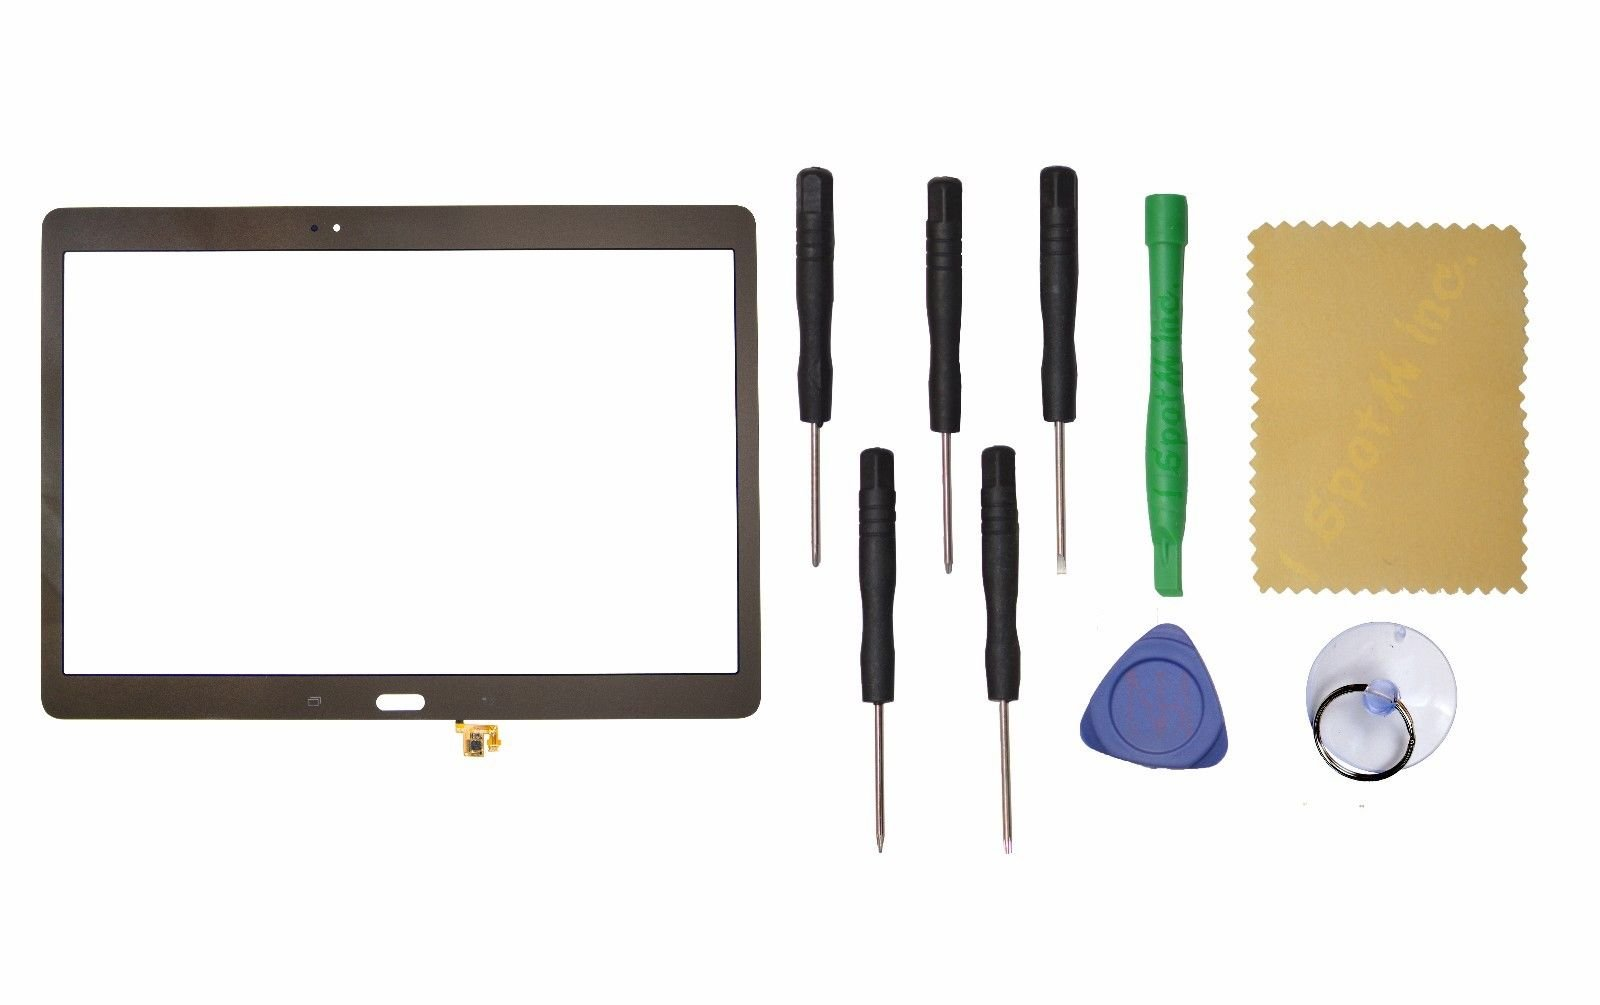 Titanium Bronze Touch Screen Digitizer Replacement for Samsung Galaxy TAB S 10.5'' SM-T800 T805 by I Spot M Inc